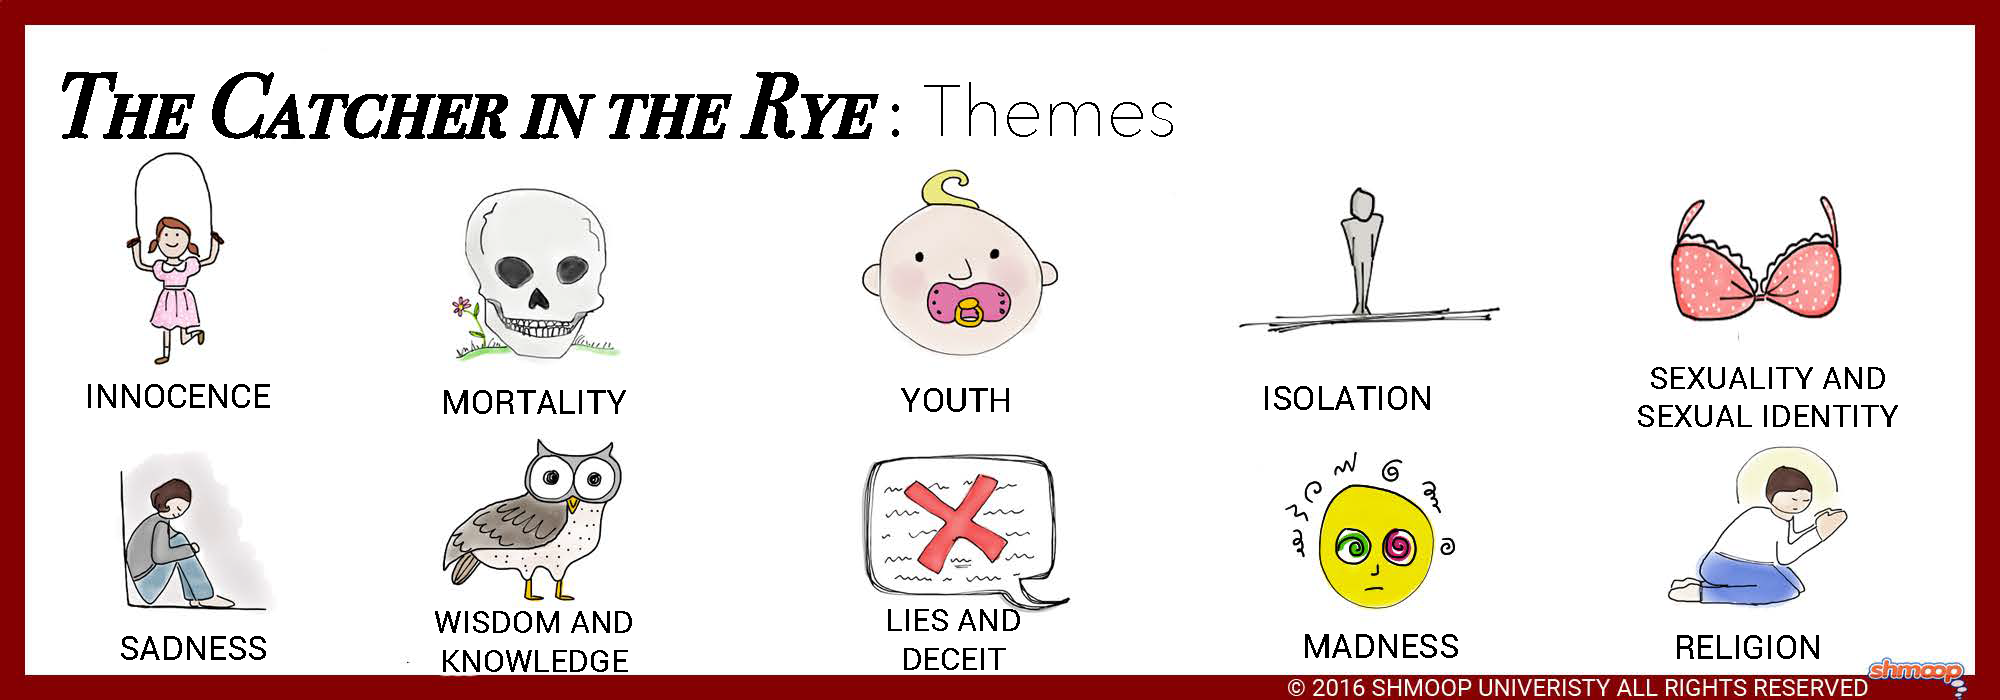 holden caulfield in the catcher in the rye chart holden caulfield